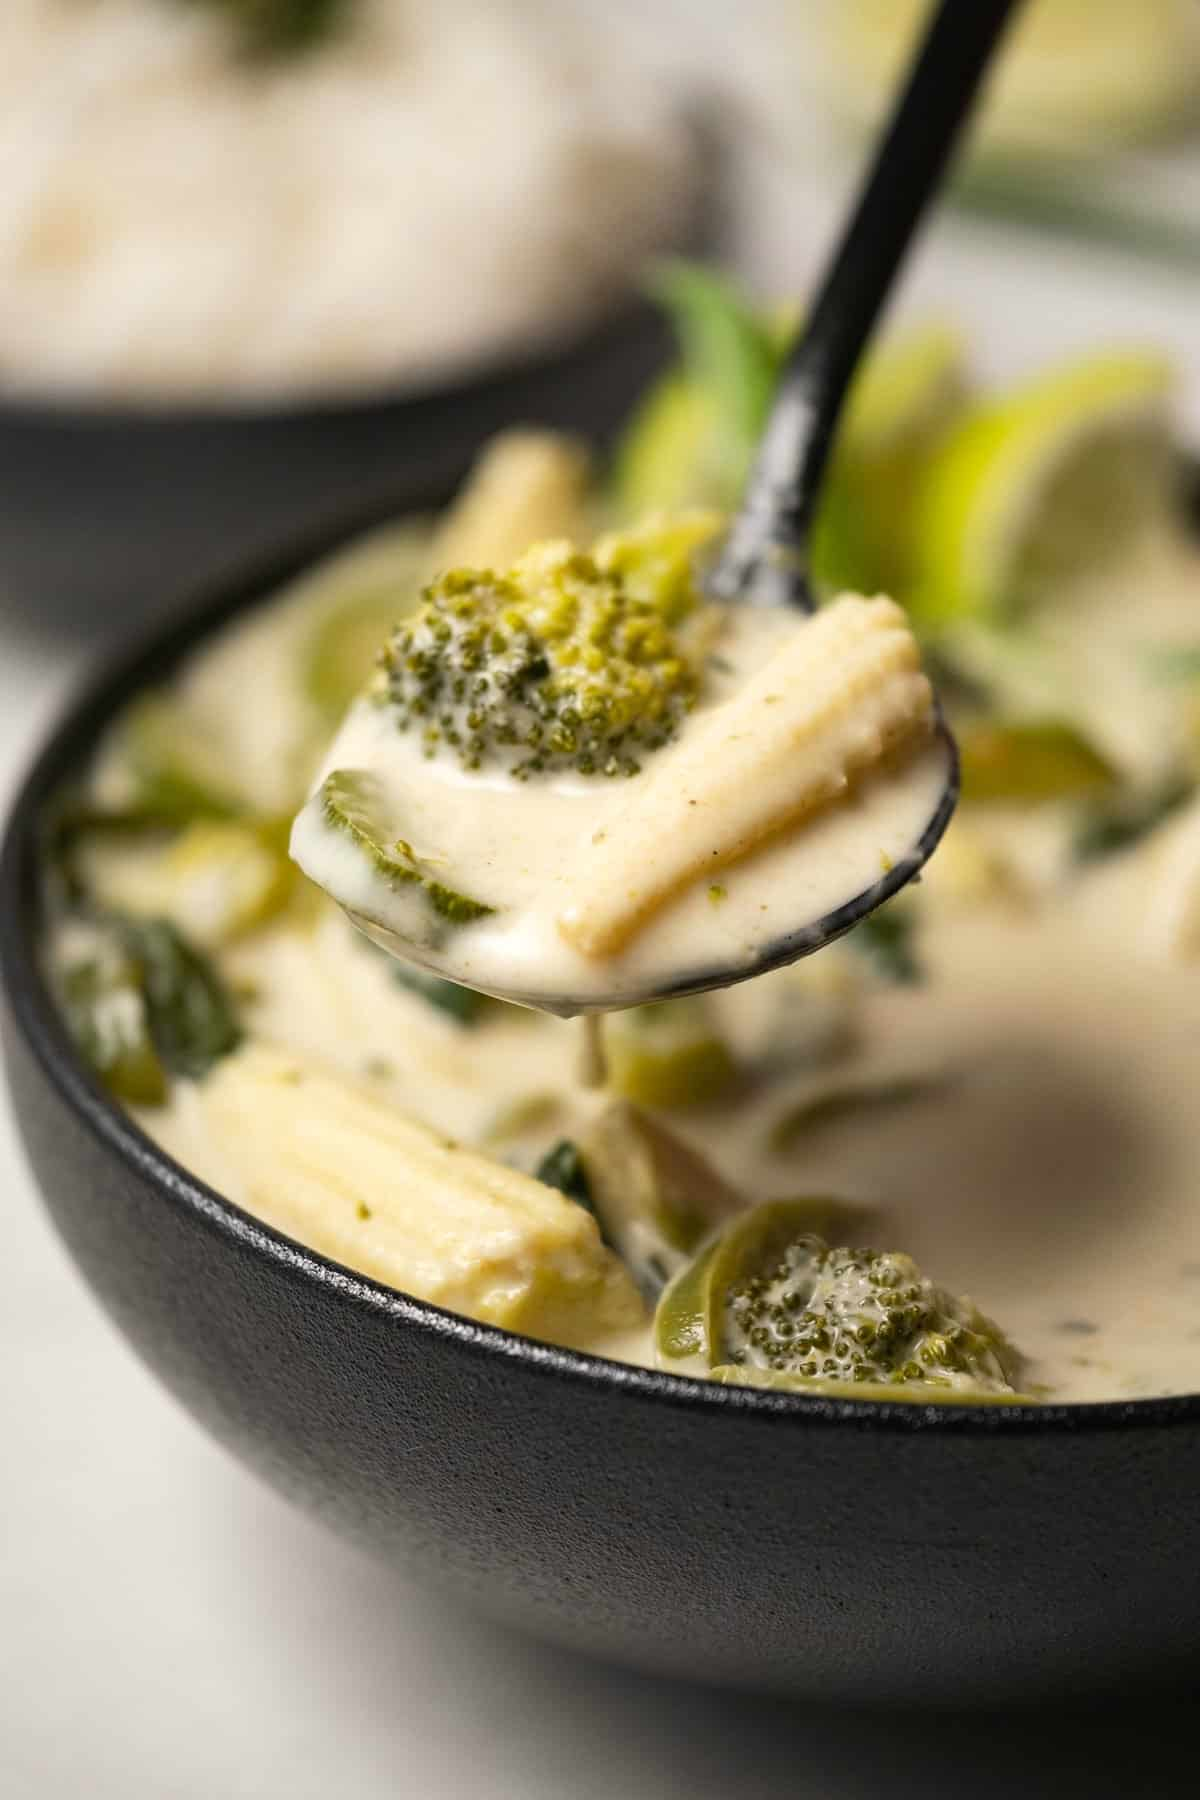 Spoonful of Thai green curry above a black bowl of curry.